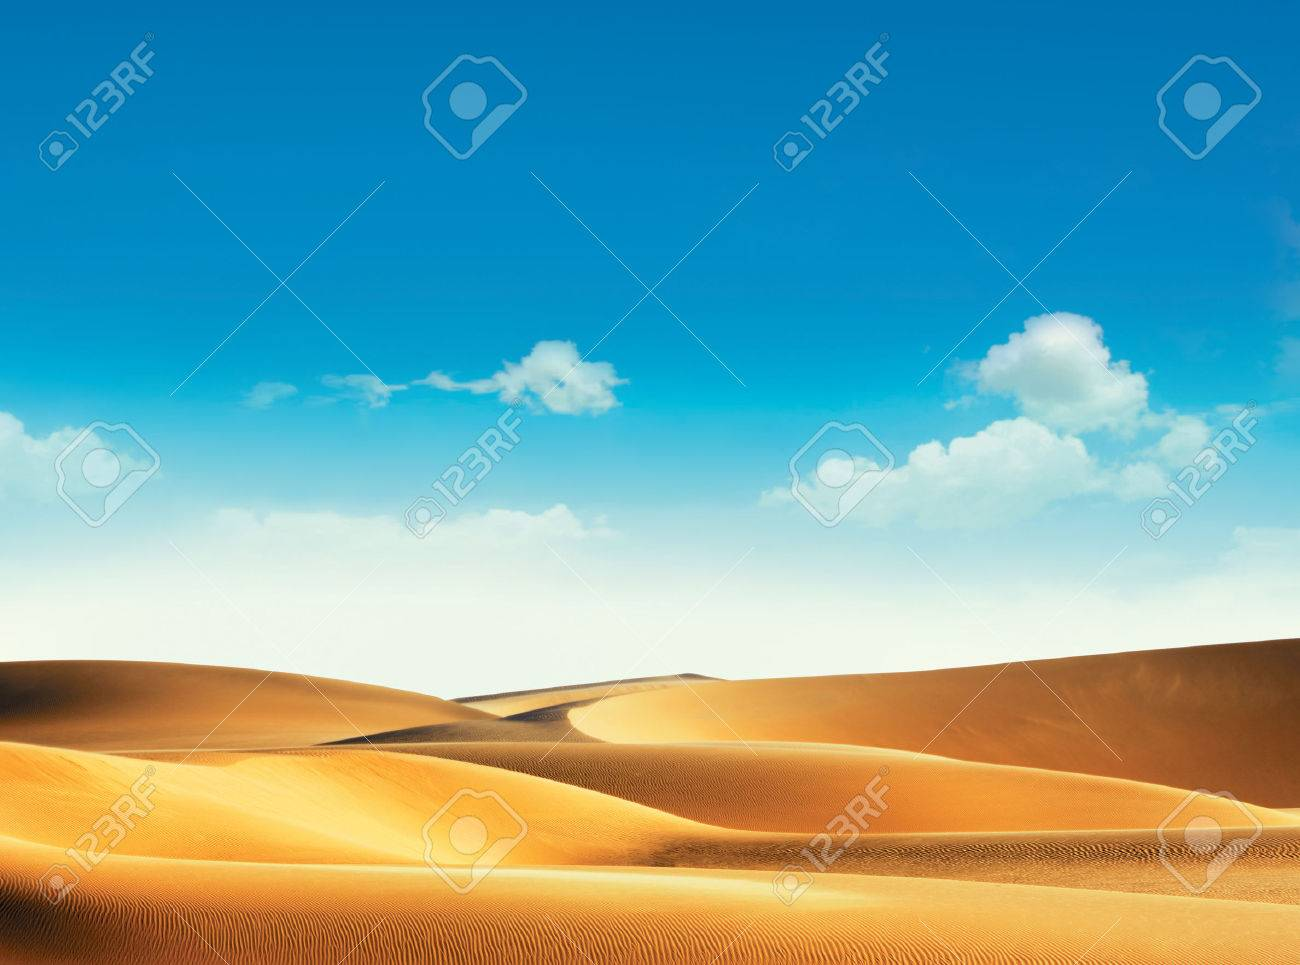 Desert and blue sky with clouds - 34256841